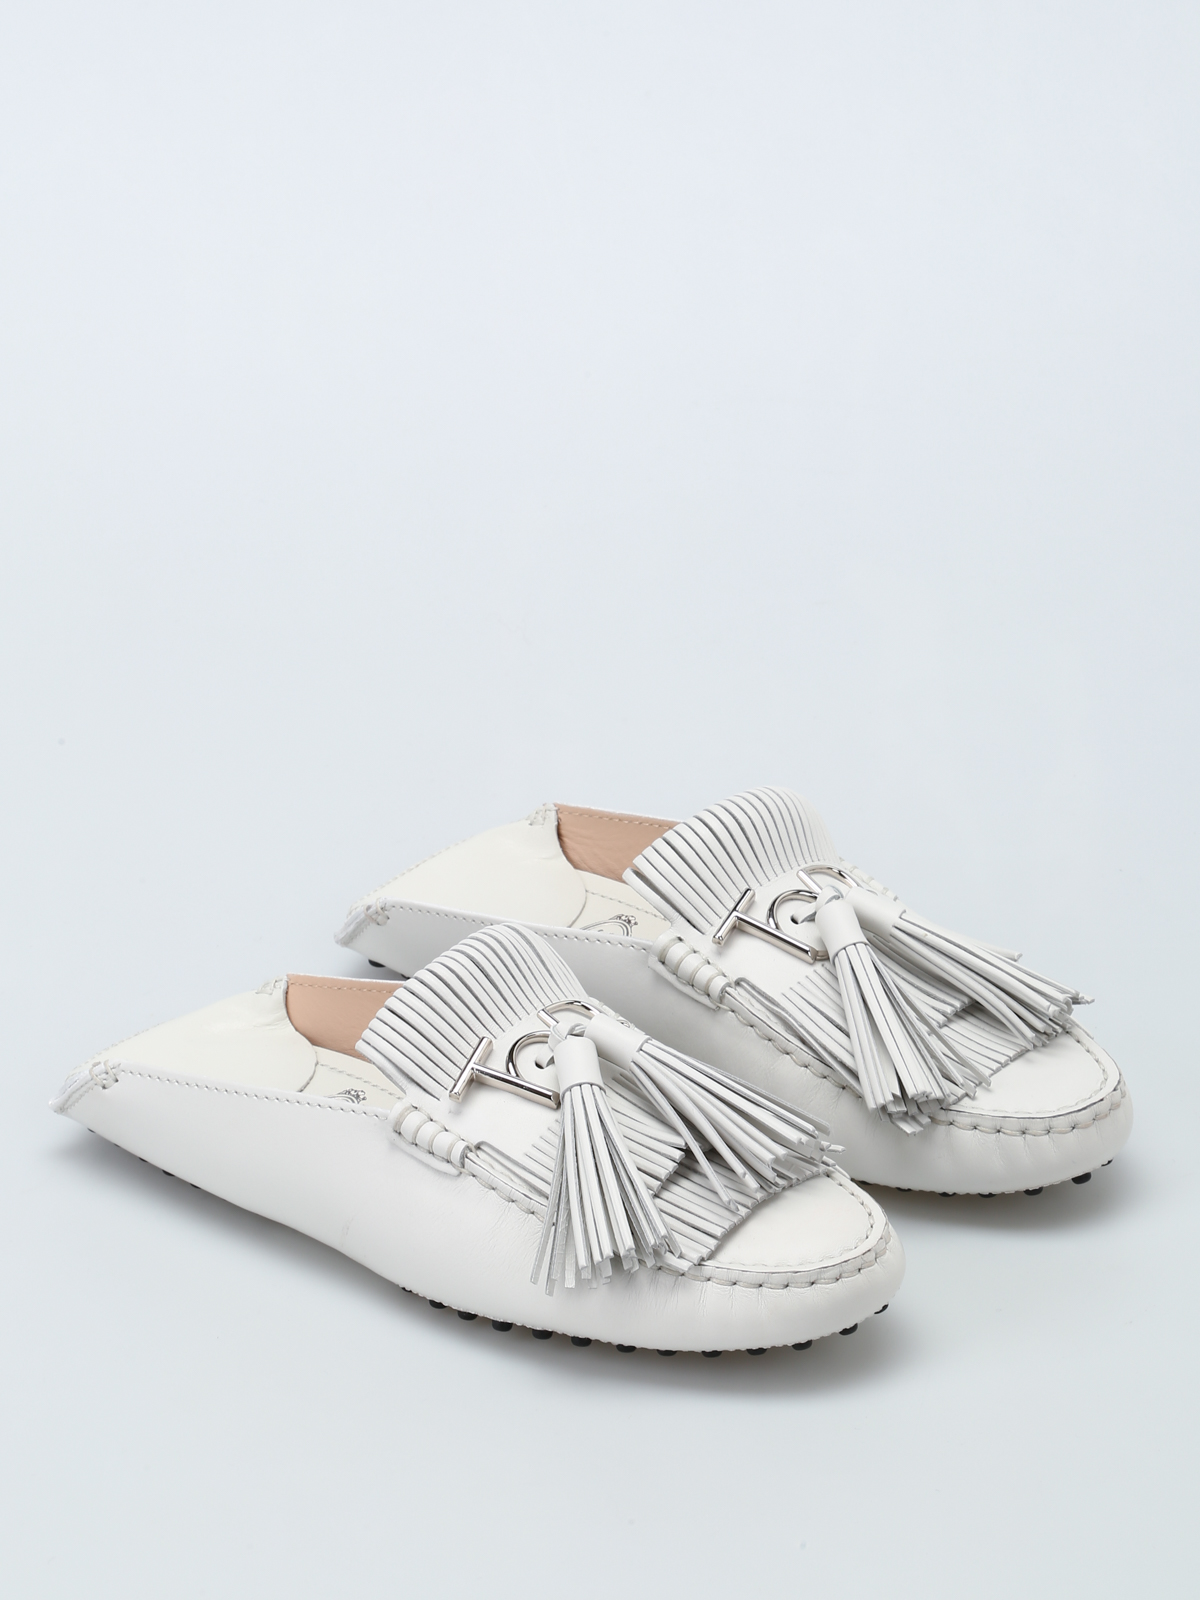 Tod's Gommino Slipper In Leather 100% Authentic For Sale R2293RRiCv